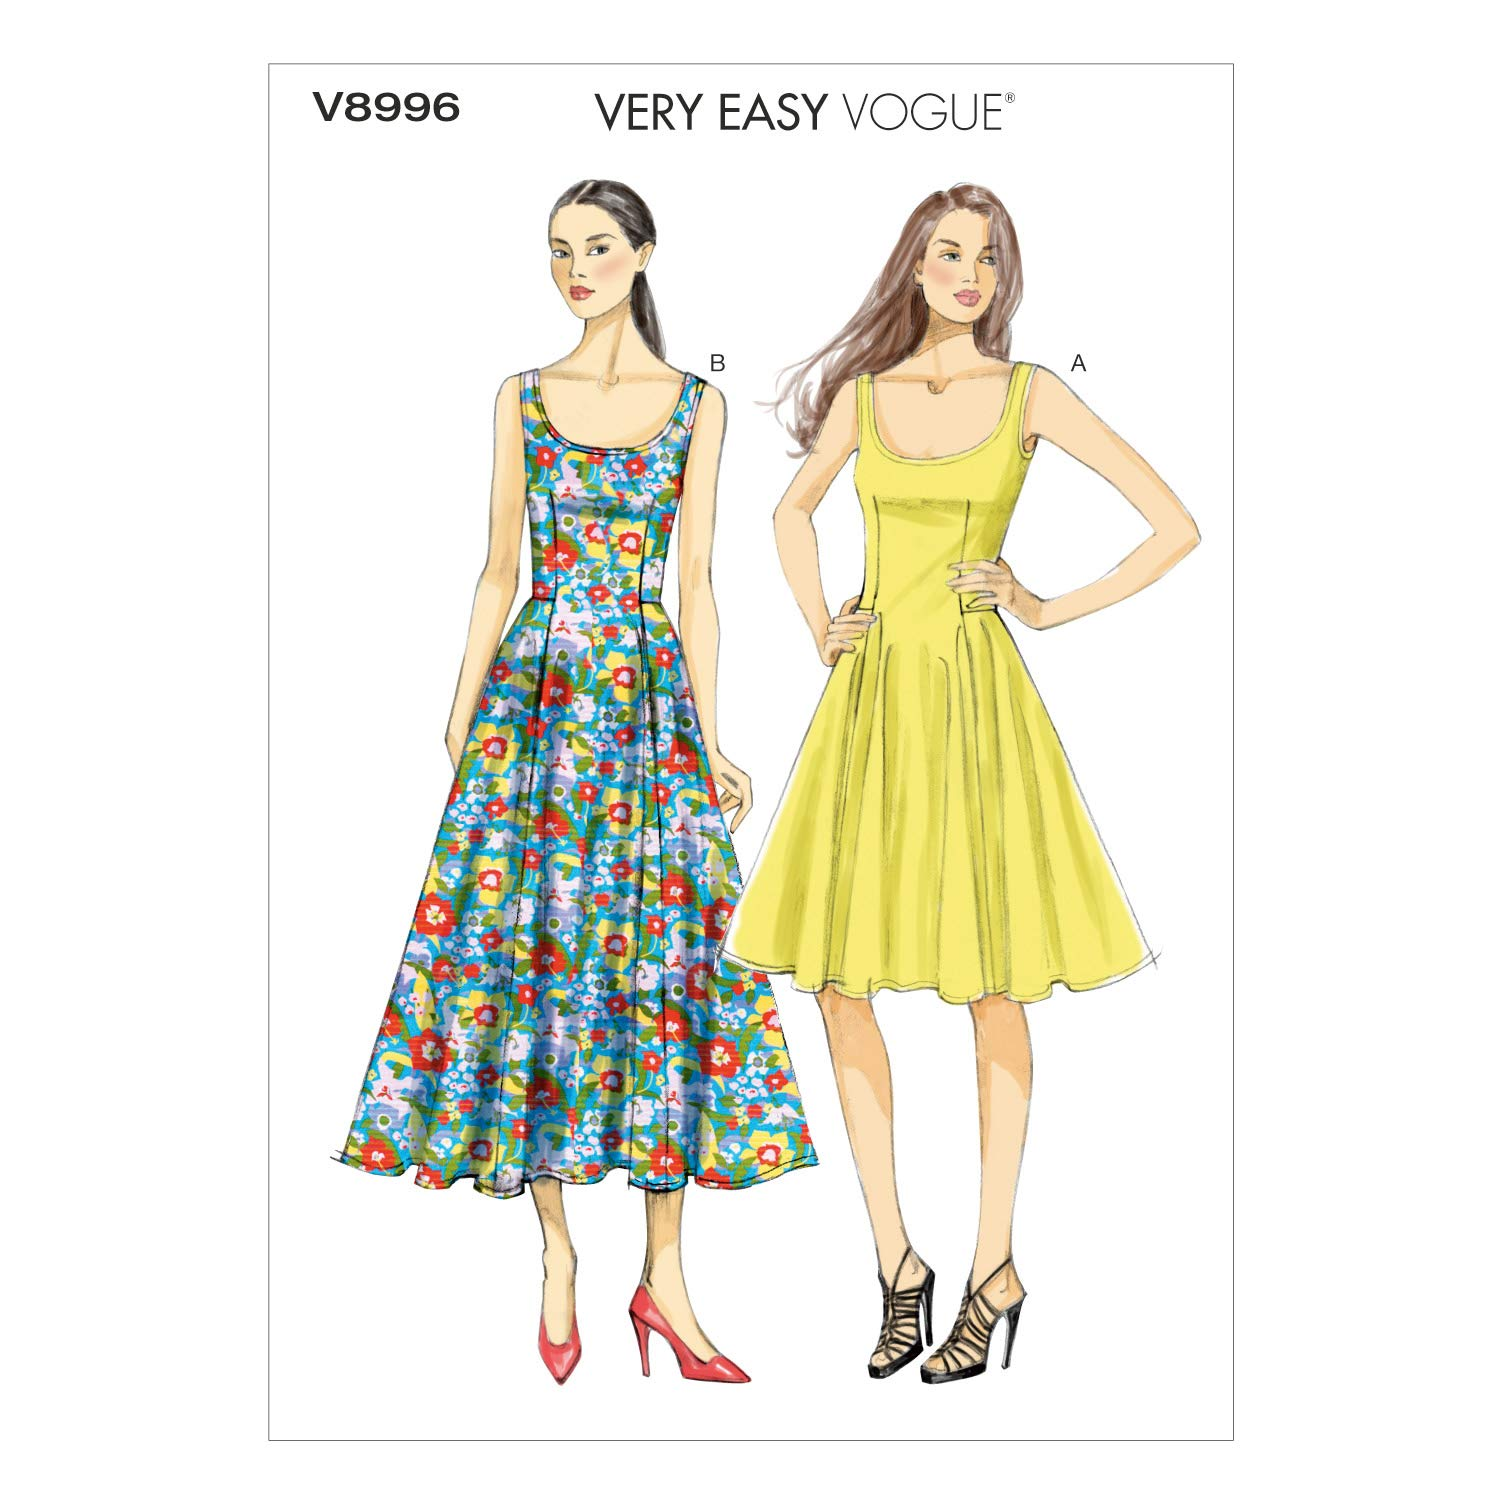 Vogue Patterns V8996 B5 - Patrones de costura para vestidos /(tallas ...